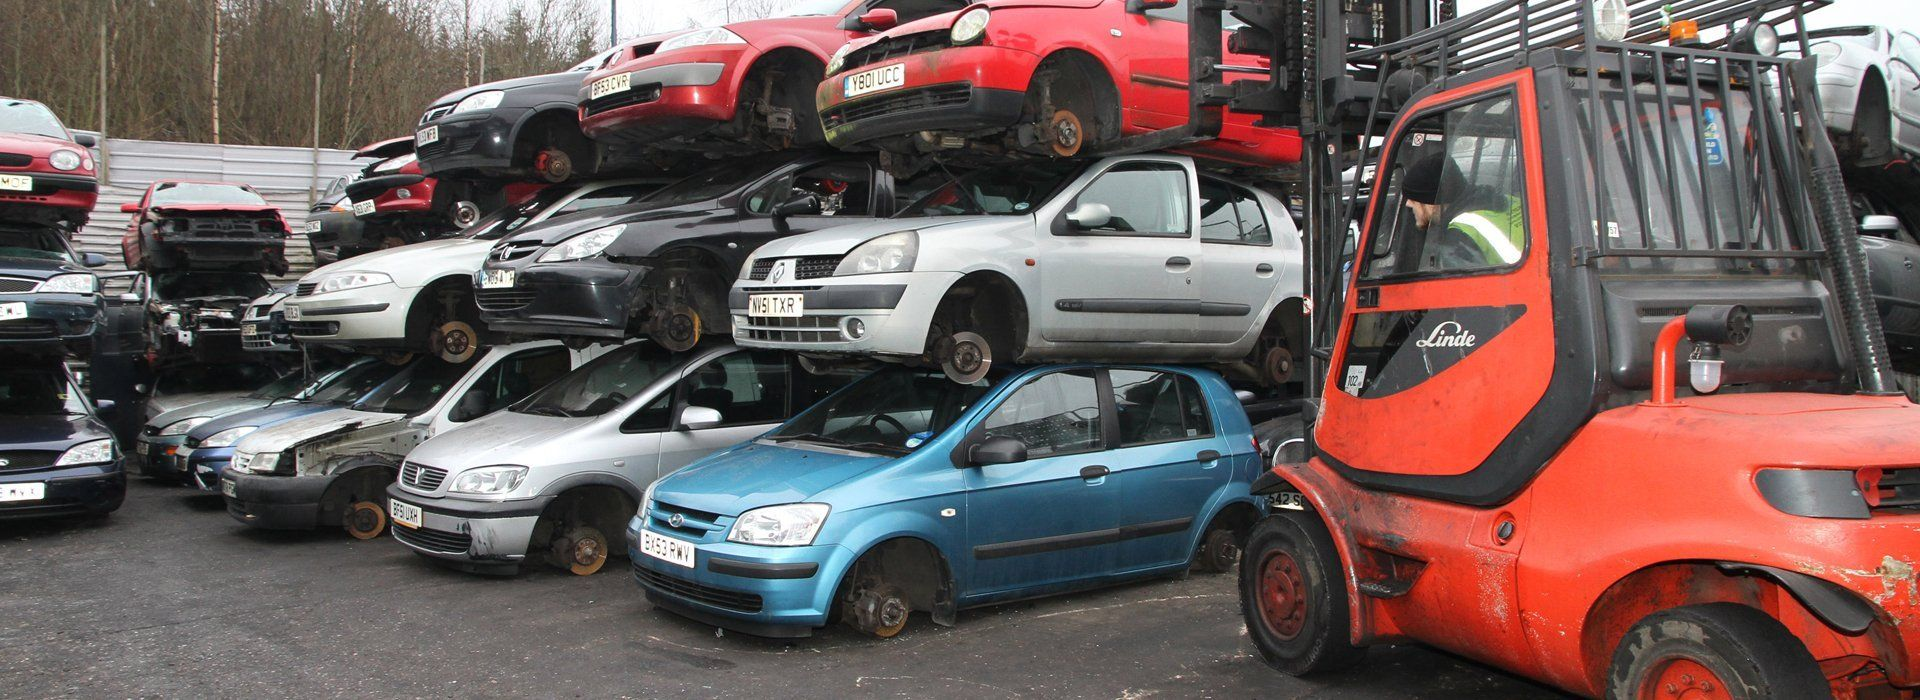 Cash For Unwanted Cars 4wd cars for sale Car